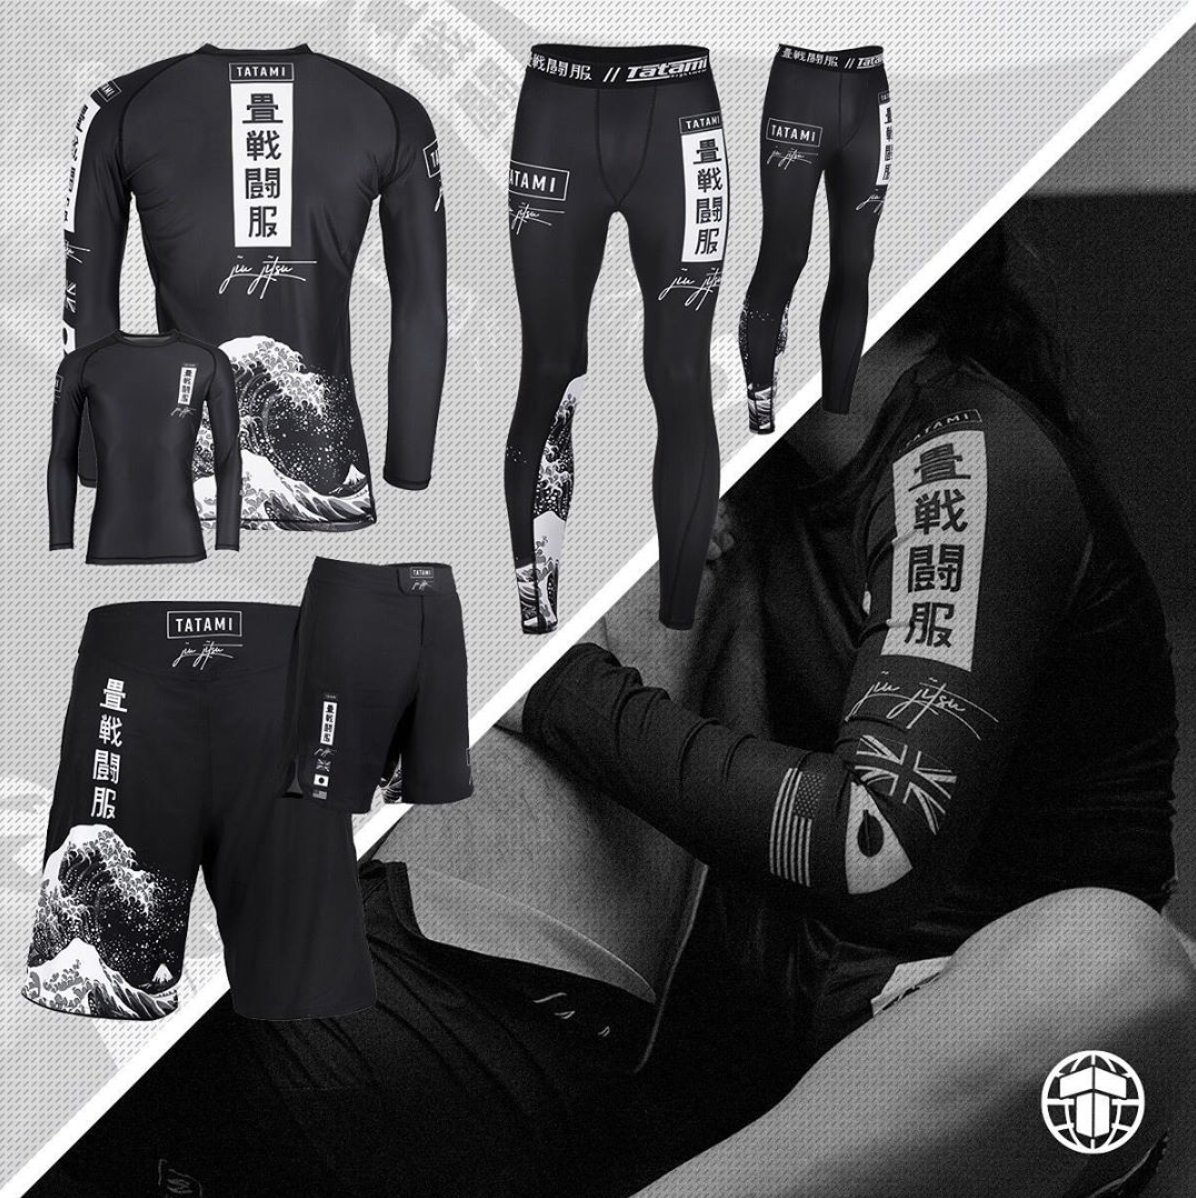 We're currently running 20% off all no gi, in anticipation for your return to the mats, including the full set of our Kanagawa collection. Get yours here: https://t.co/OSEt8FWUEr https://t.co/kVtzVoAre1